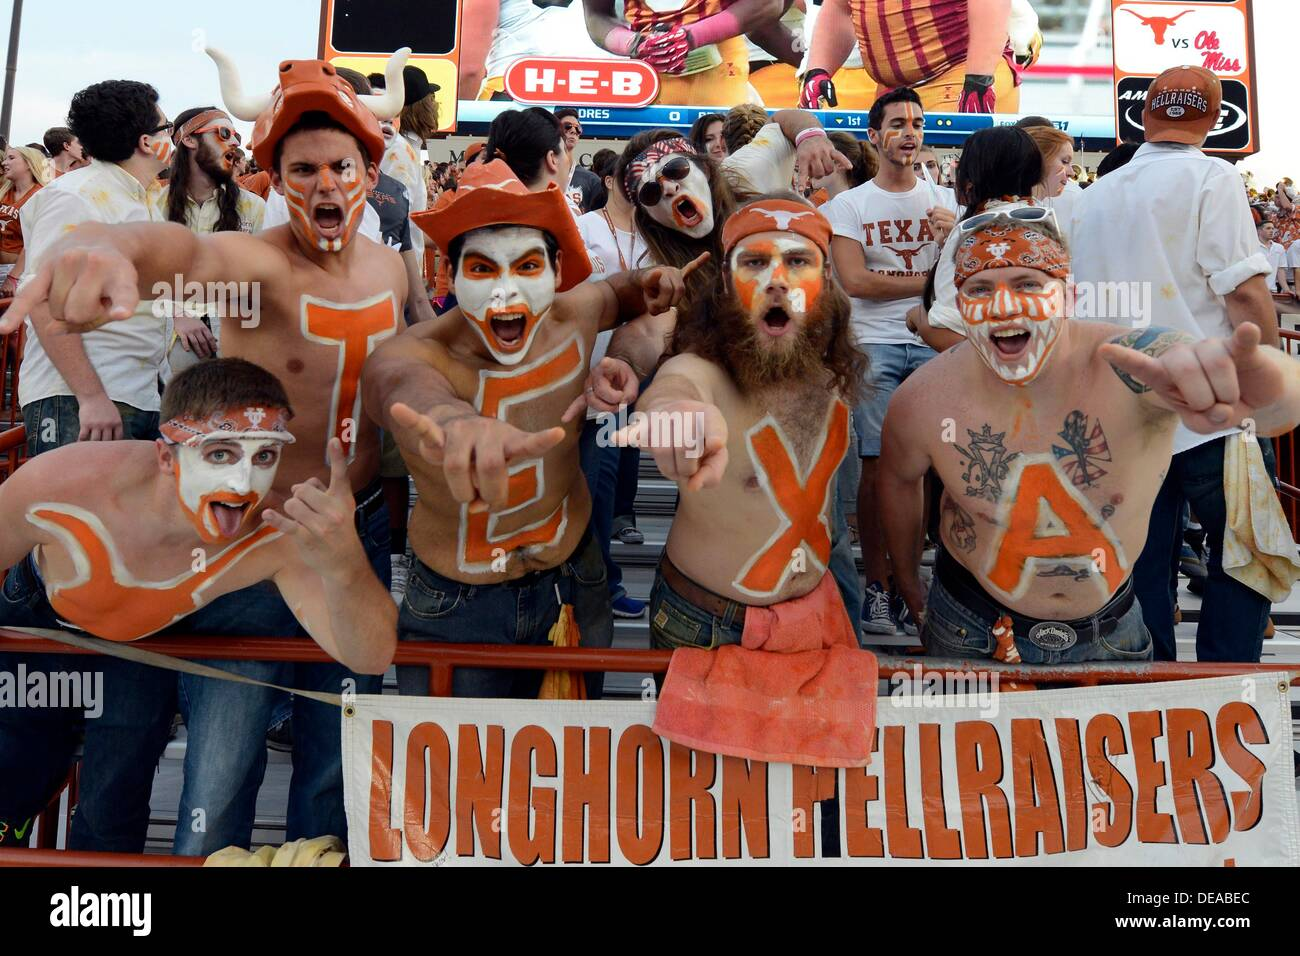 Sept 14 2013 Fans Of The Texas Longhorns In Action Vs The Ole